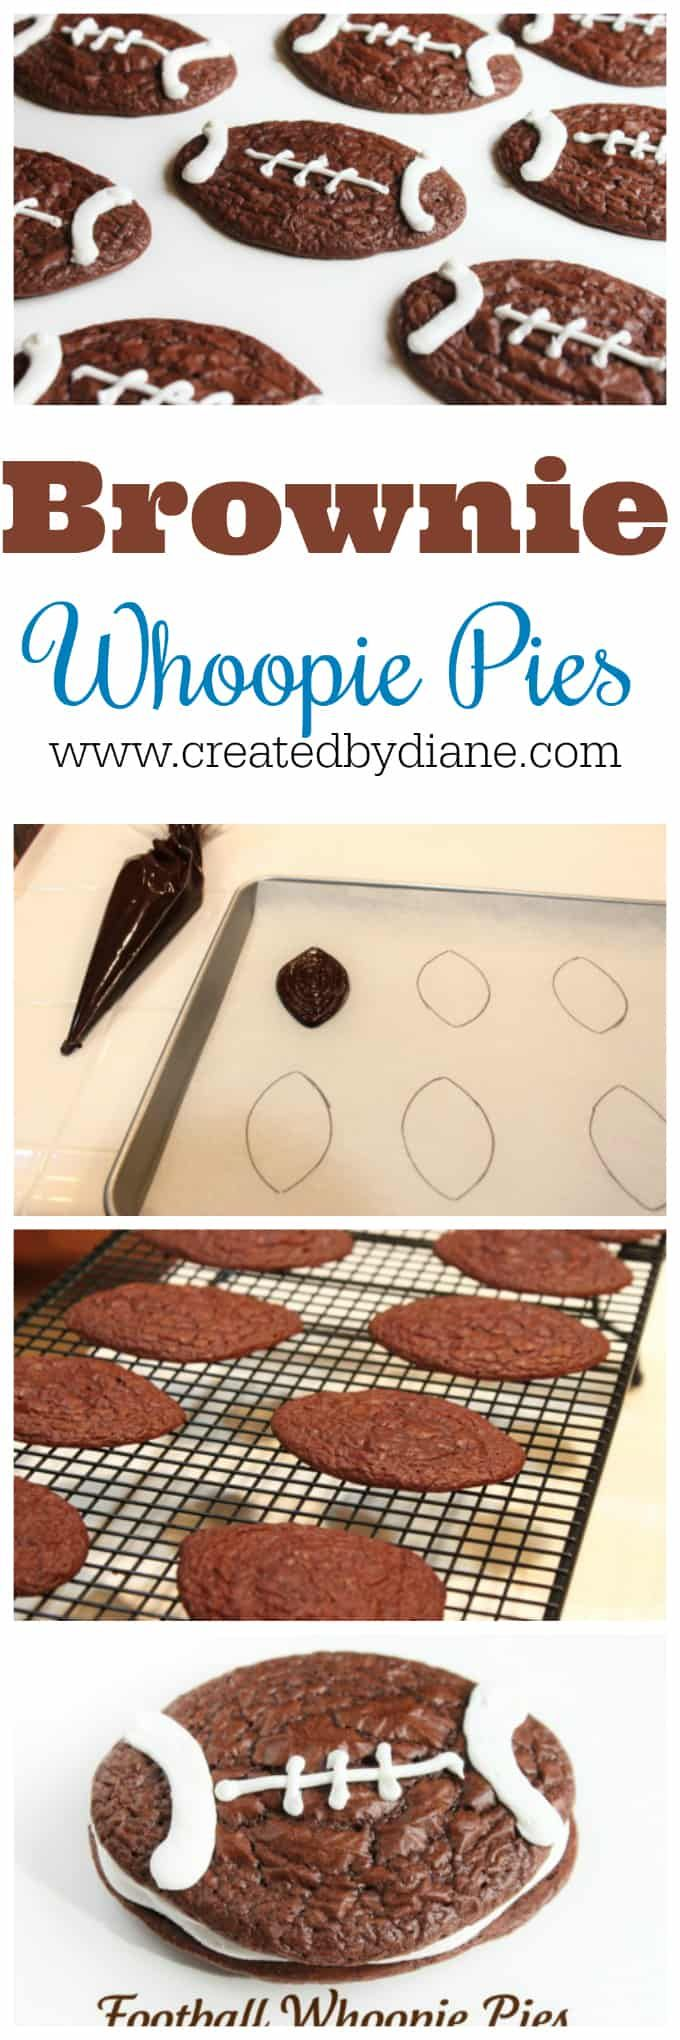 Brownie mix makes great whoopie pies. Football sha…Edit description